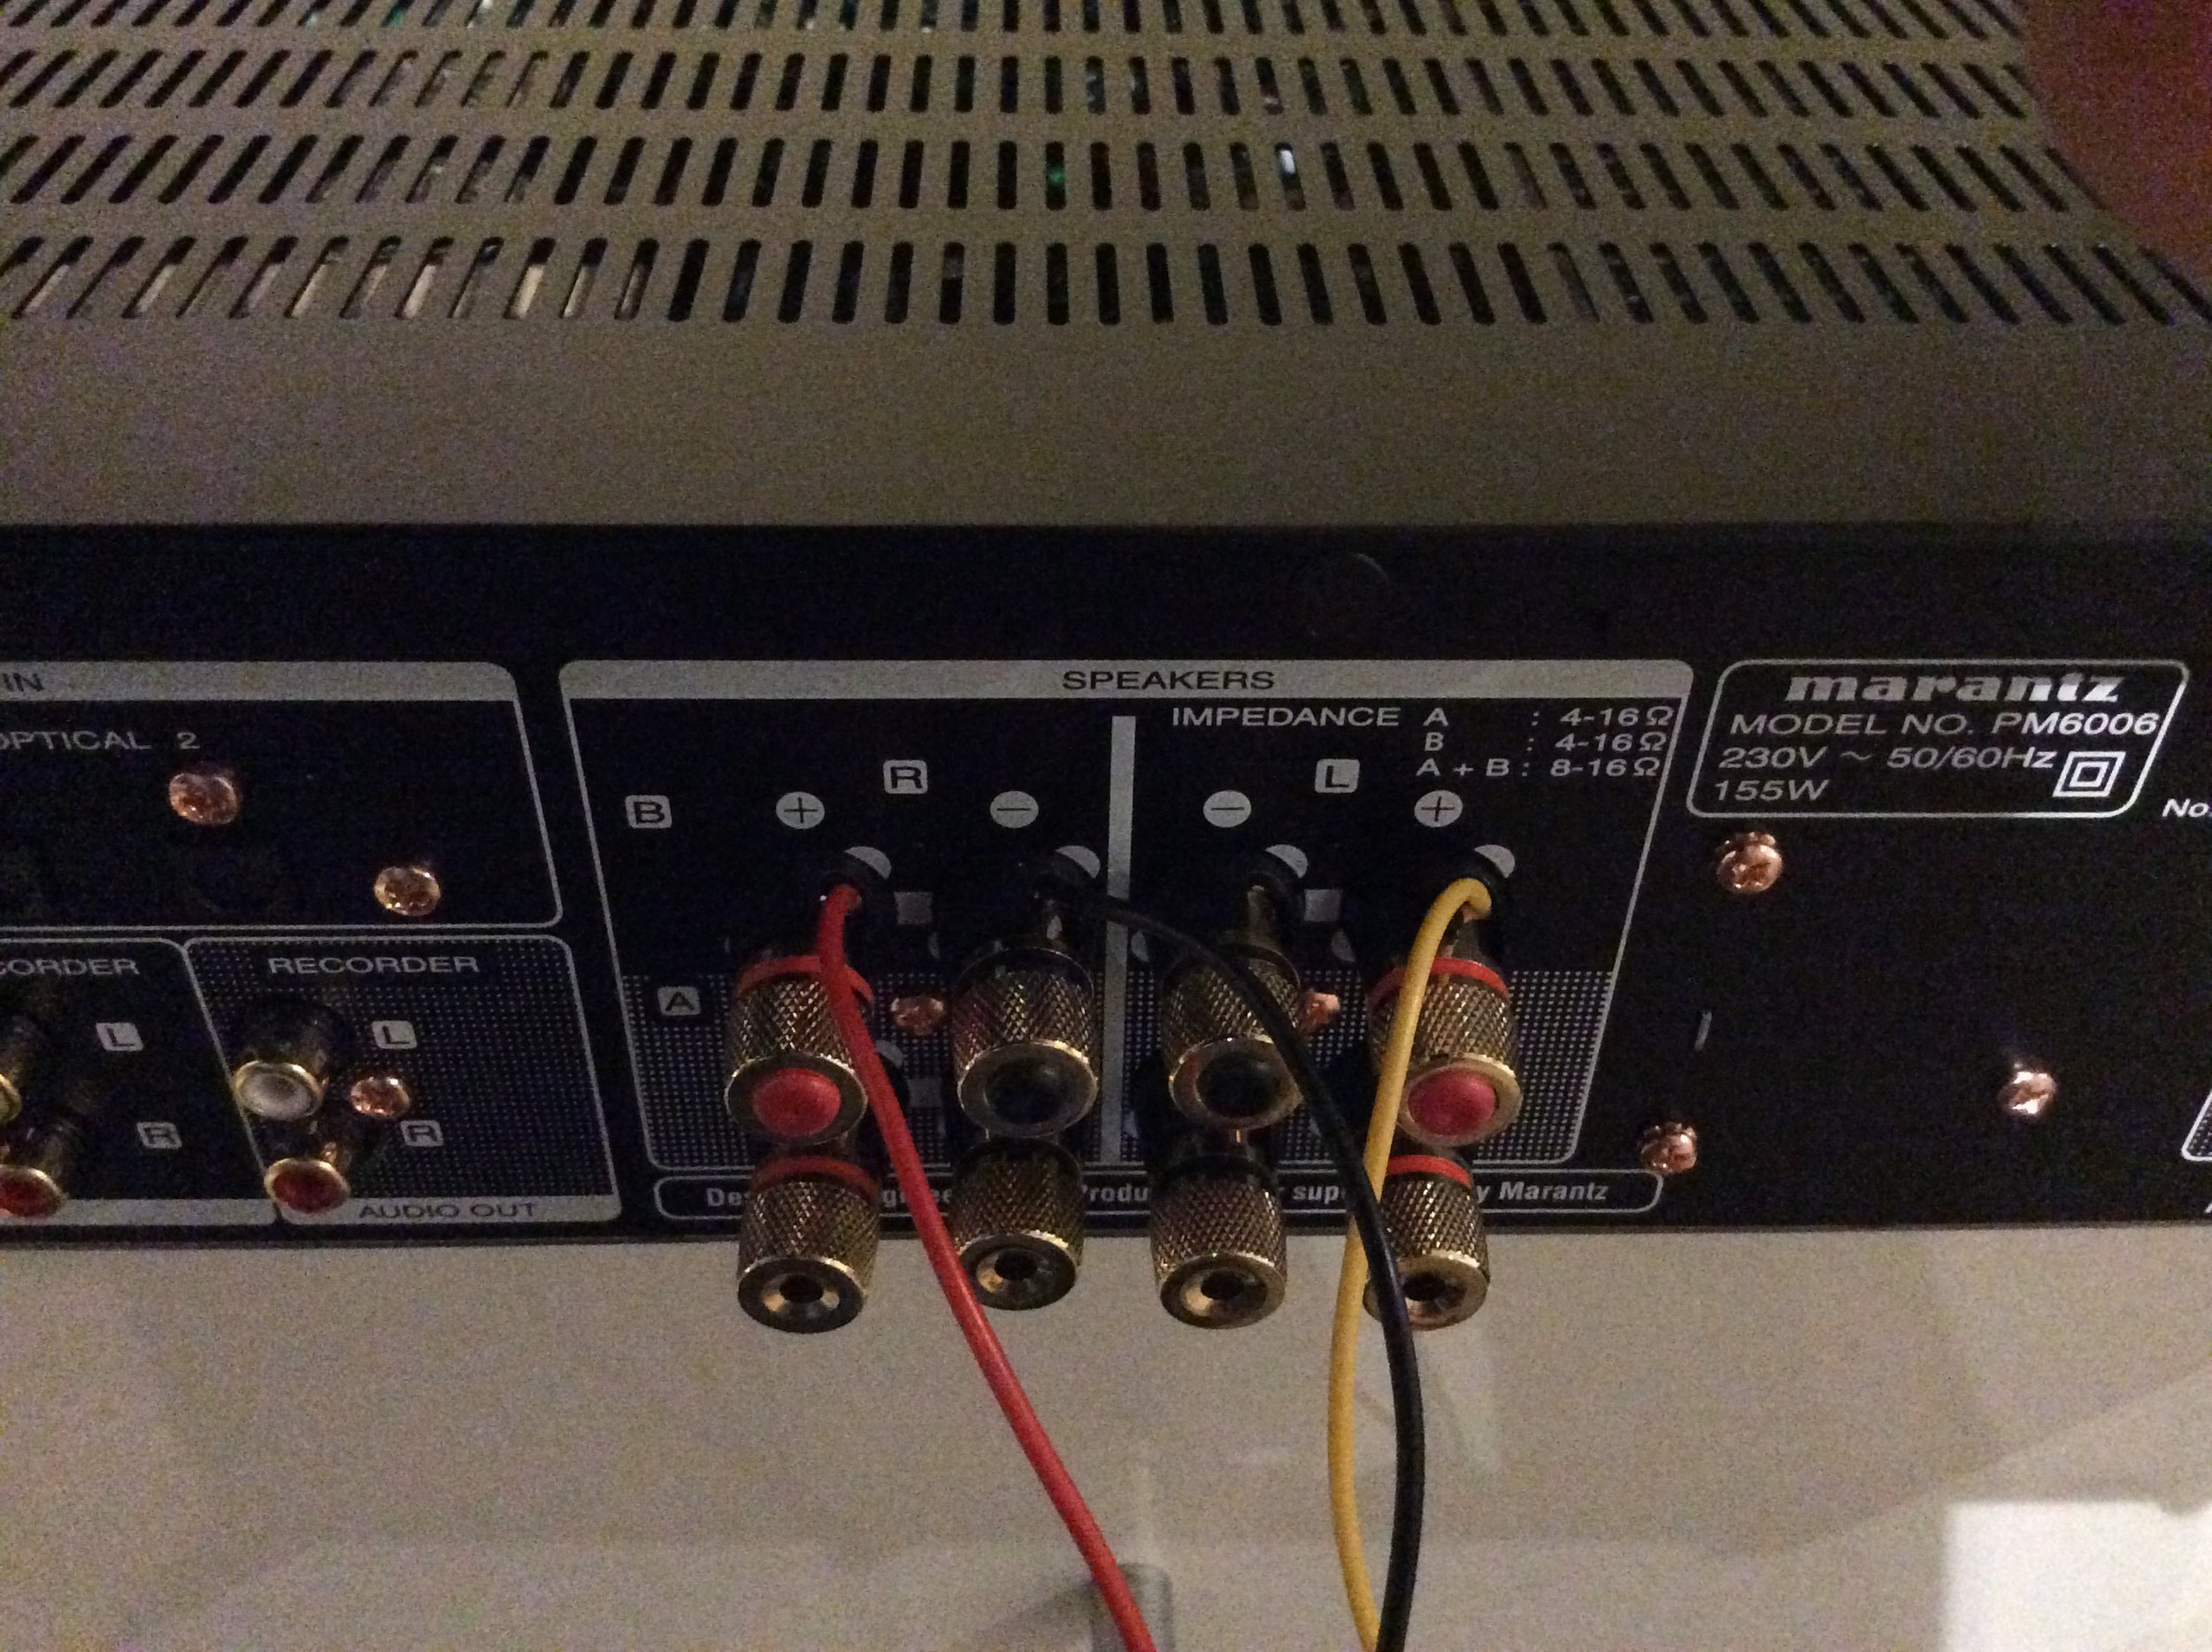 High Level Cable connected to Amplifier